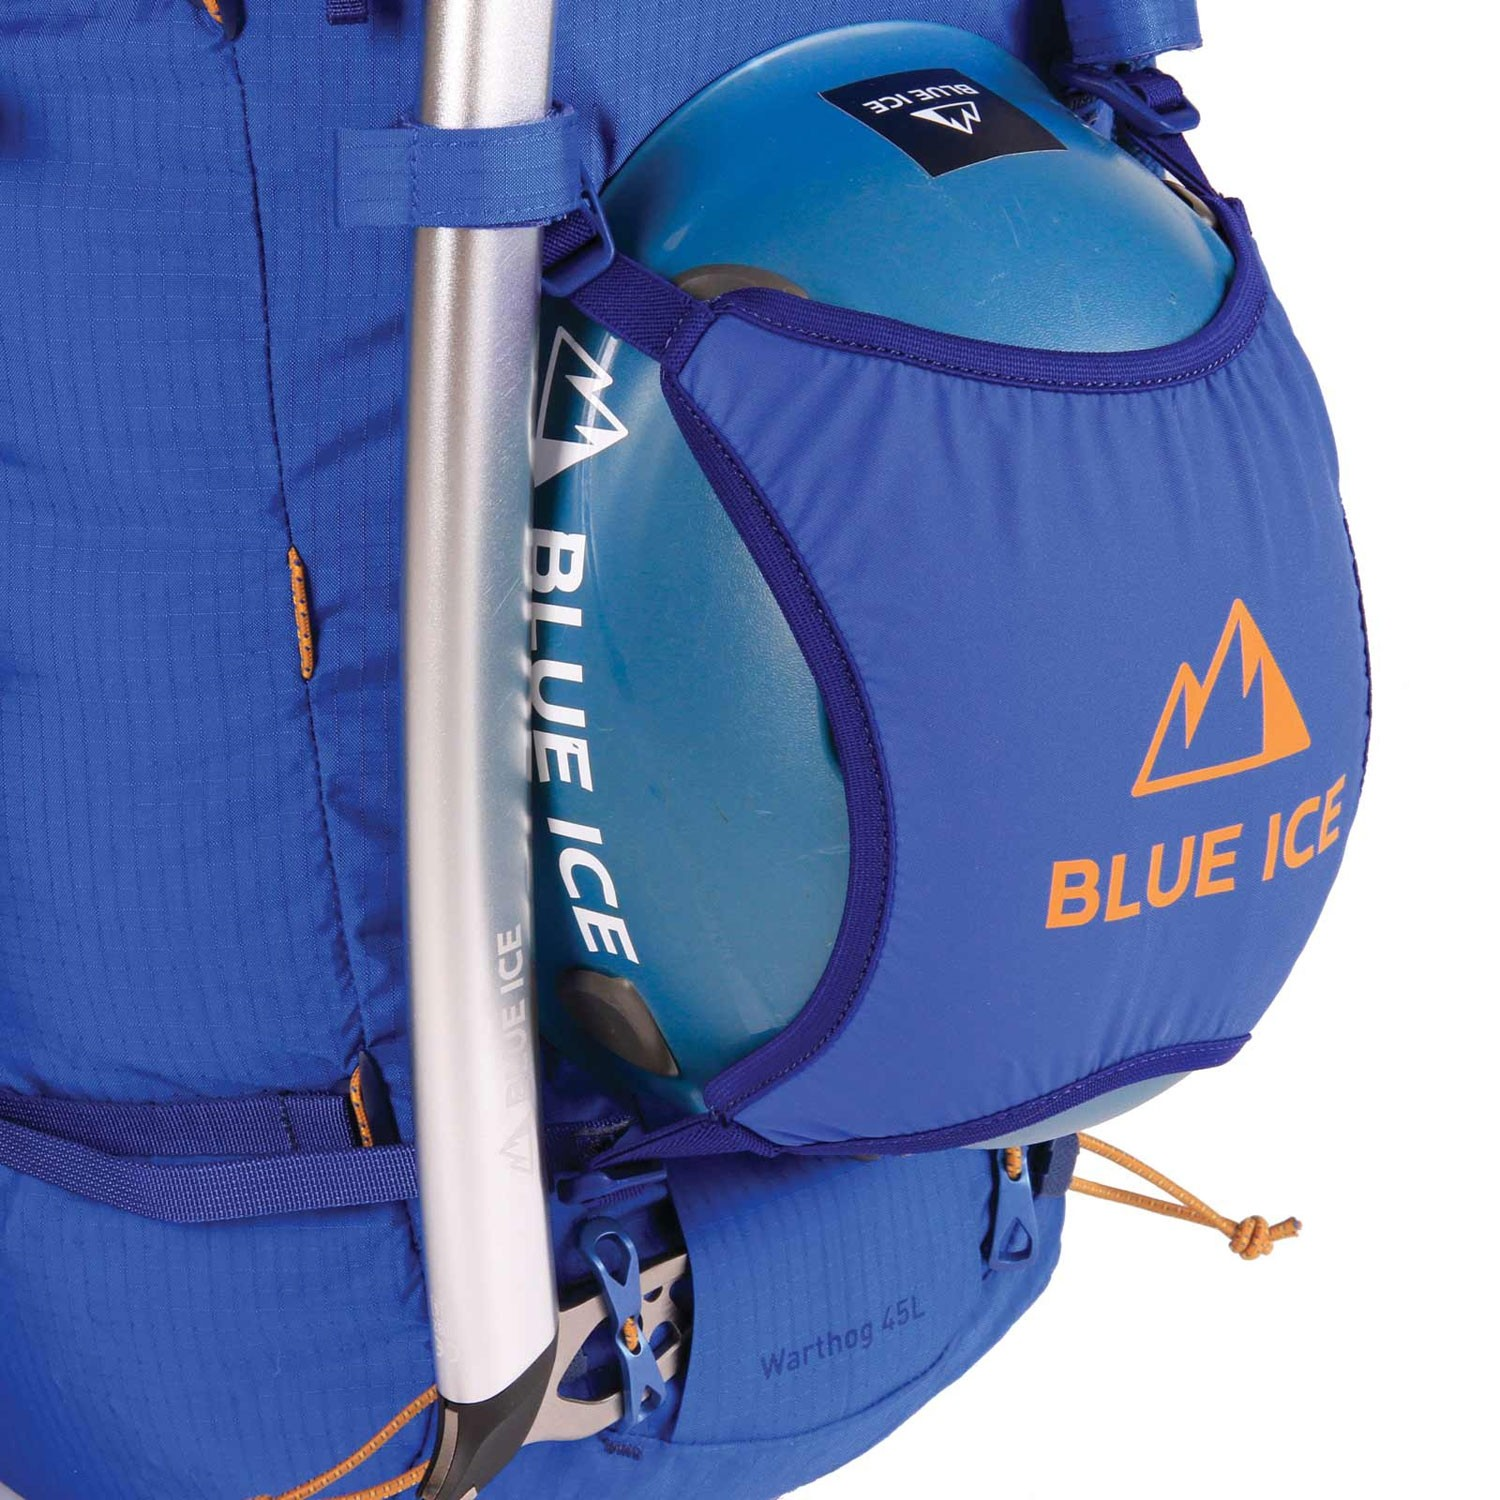 Blue Ice Warthog 45L Rucksack - Turkish Blue - ice axe & helmet holder